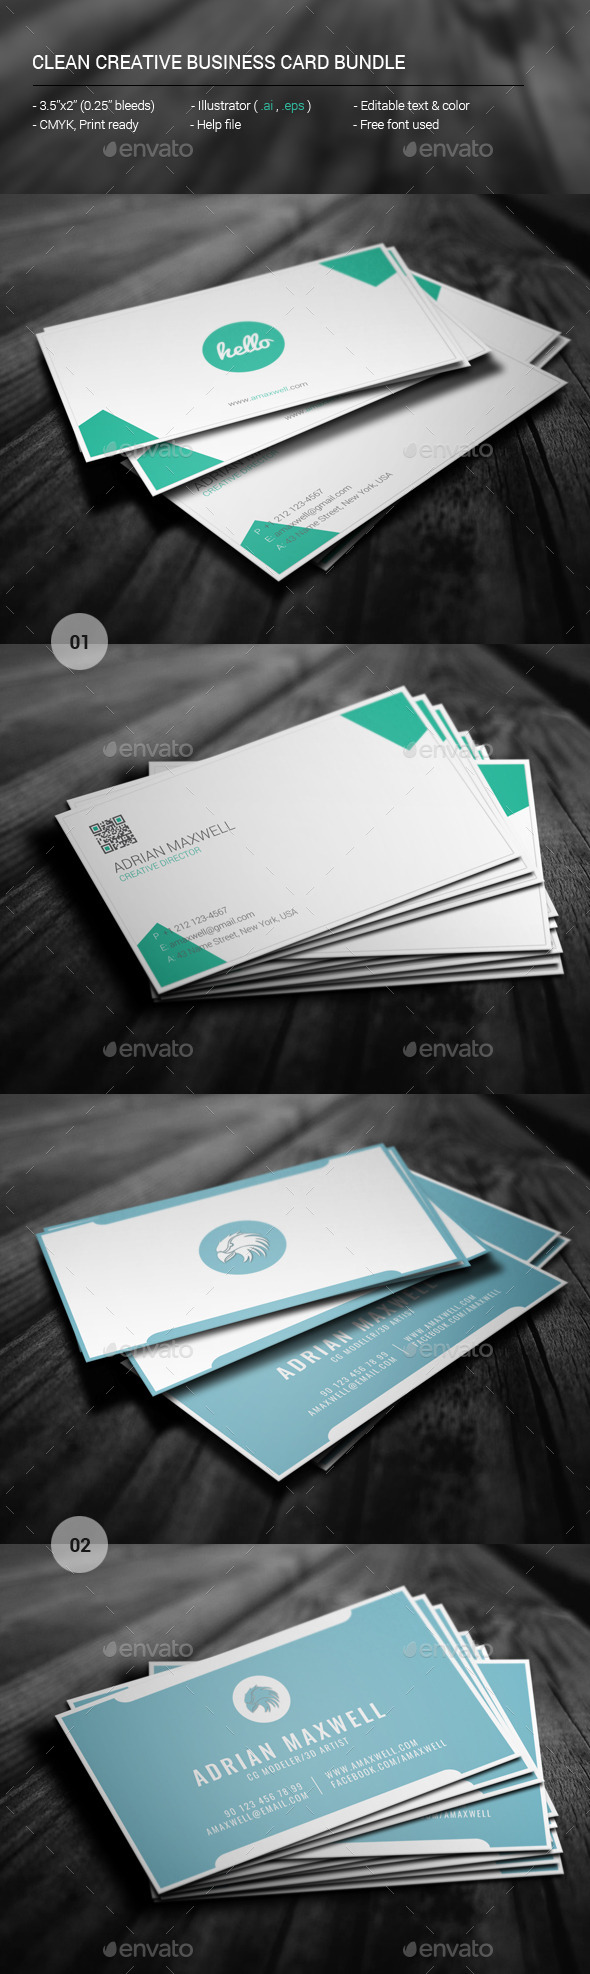 Clean Creative Business Card Bundle - Creative Business Cards